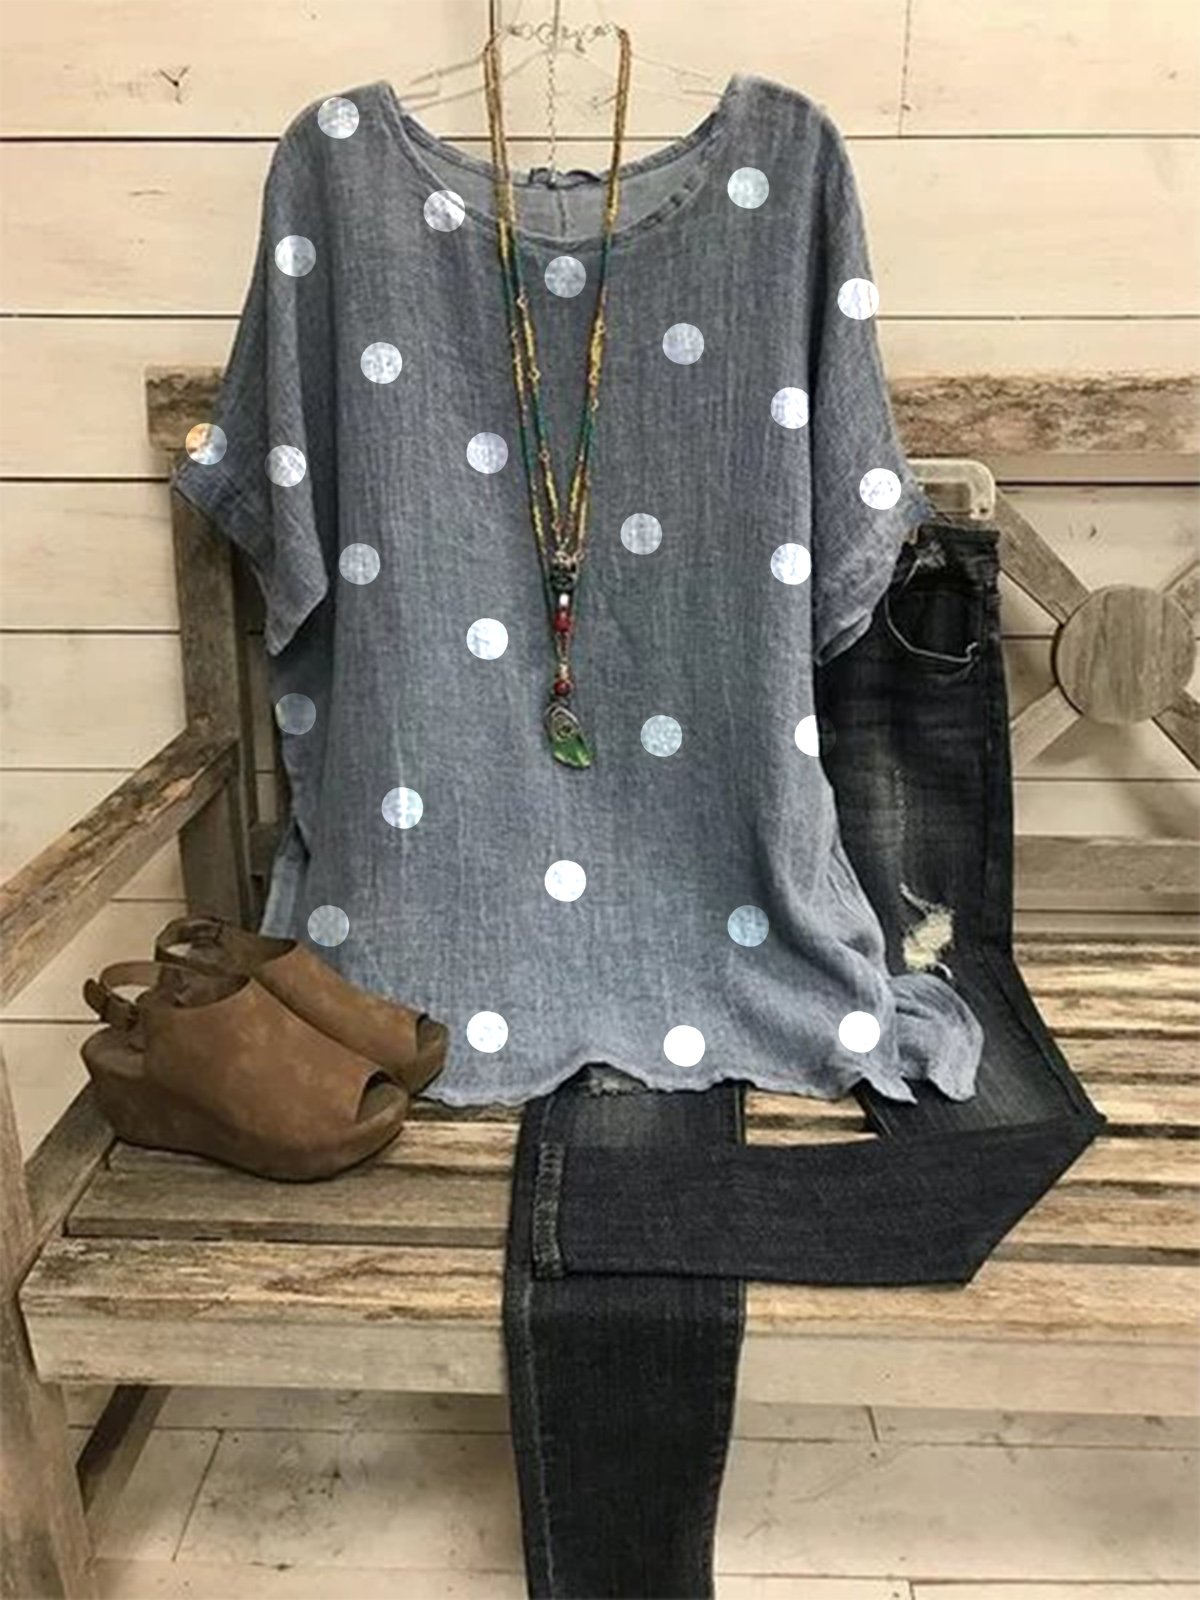 2020 New Gray Floral-Print Casual Crew Neck Short Sleeve Tops